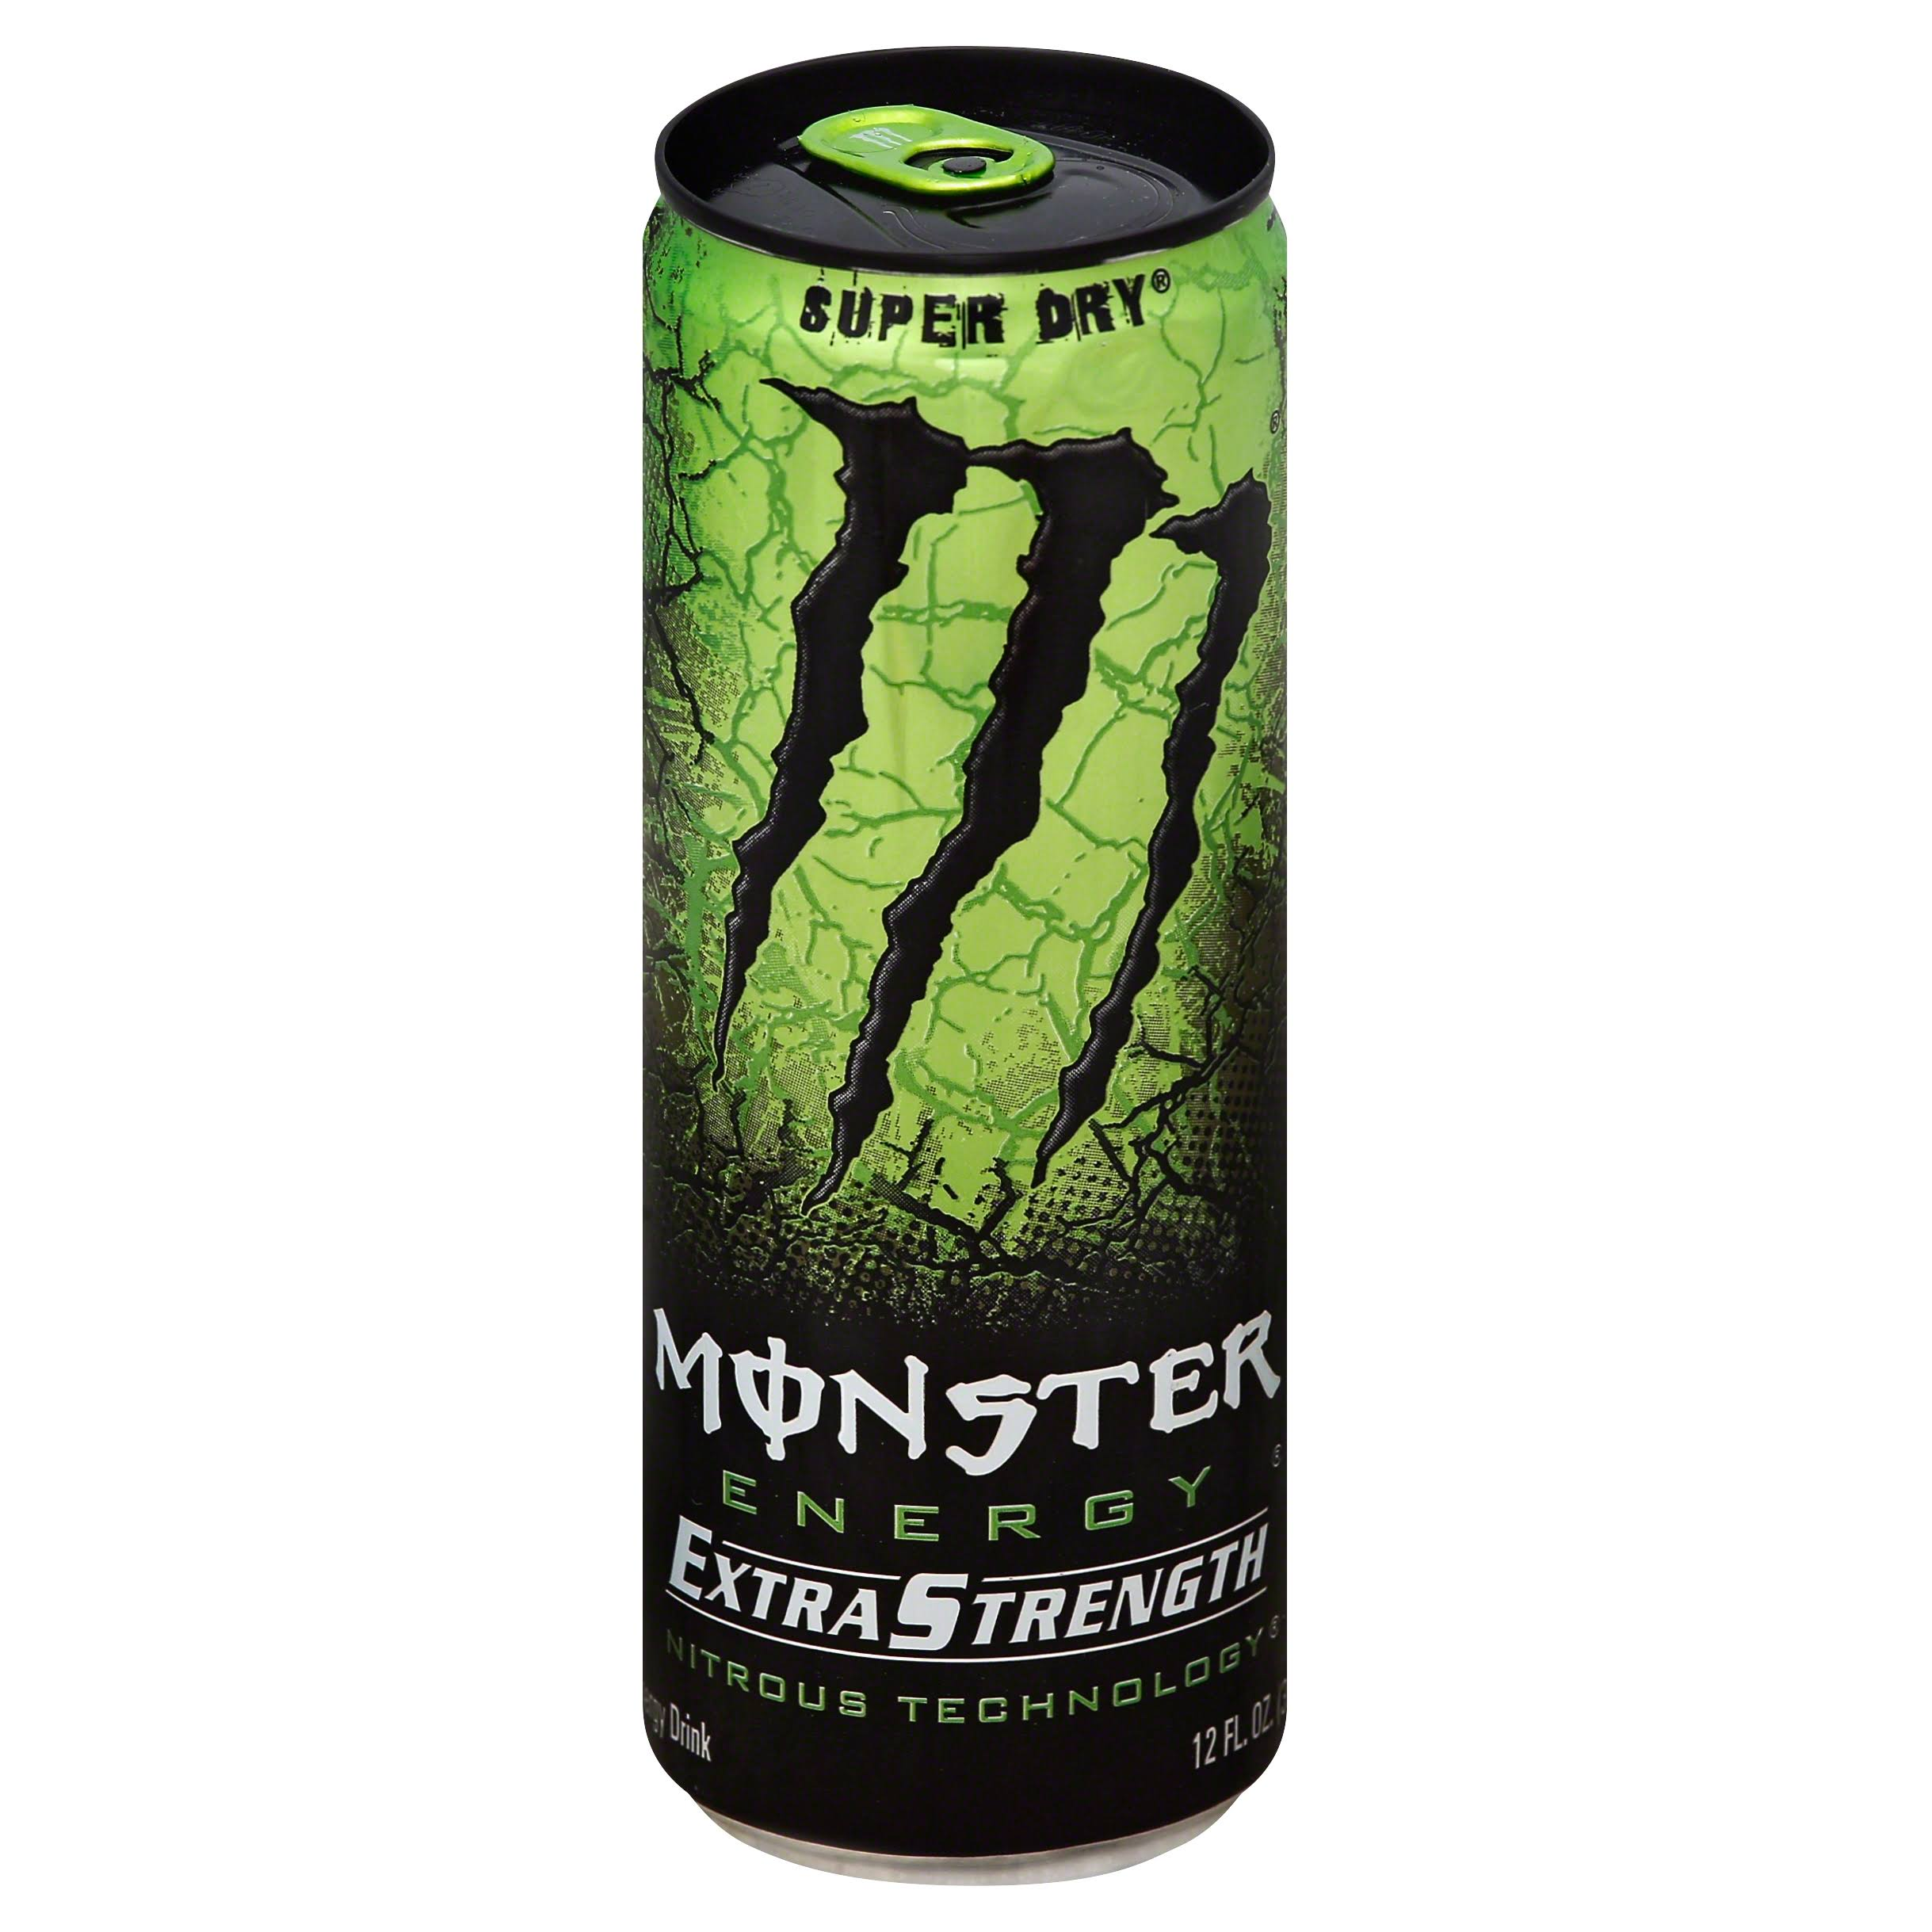 Monster Energy Drink - Extra Strength Nitrous Technology, 12oz